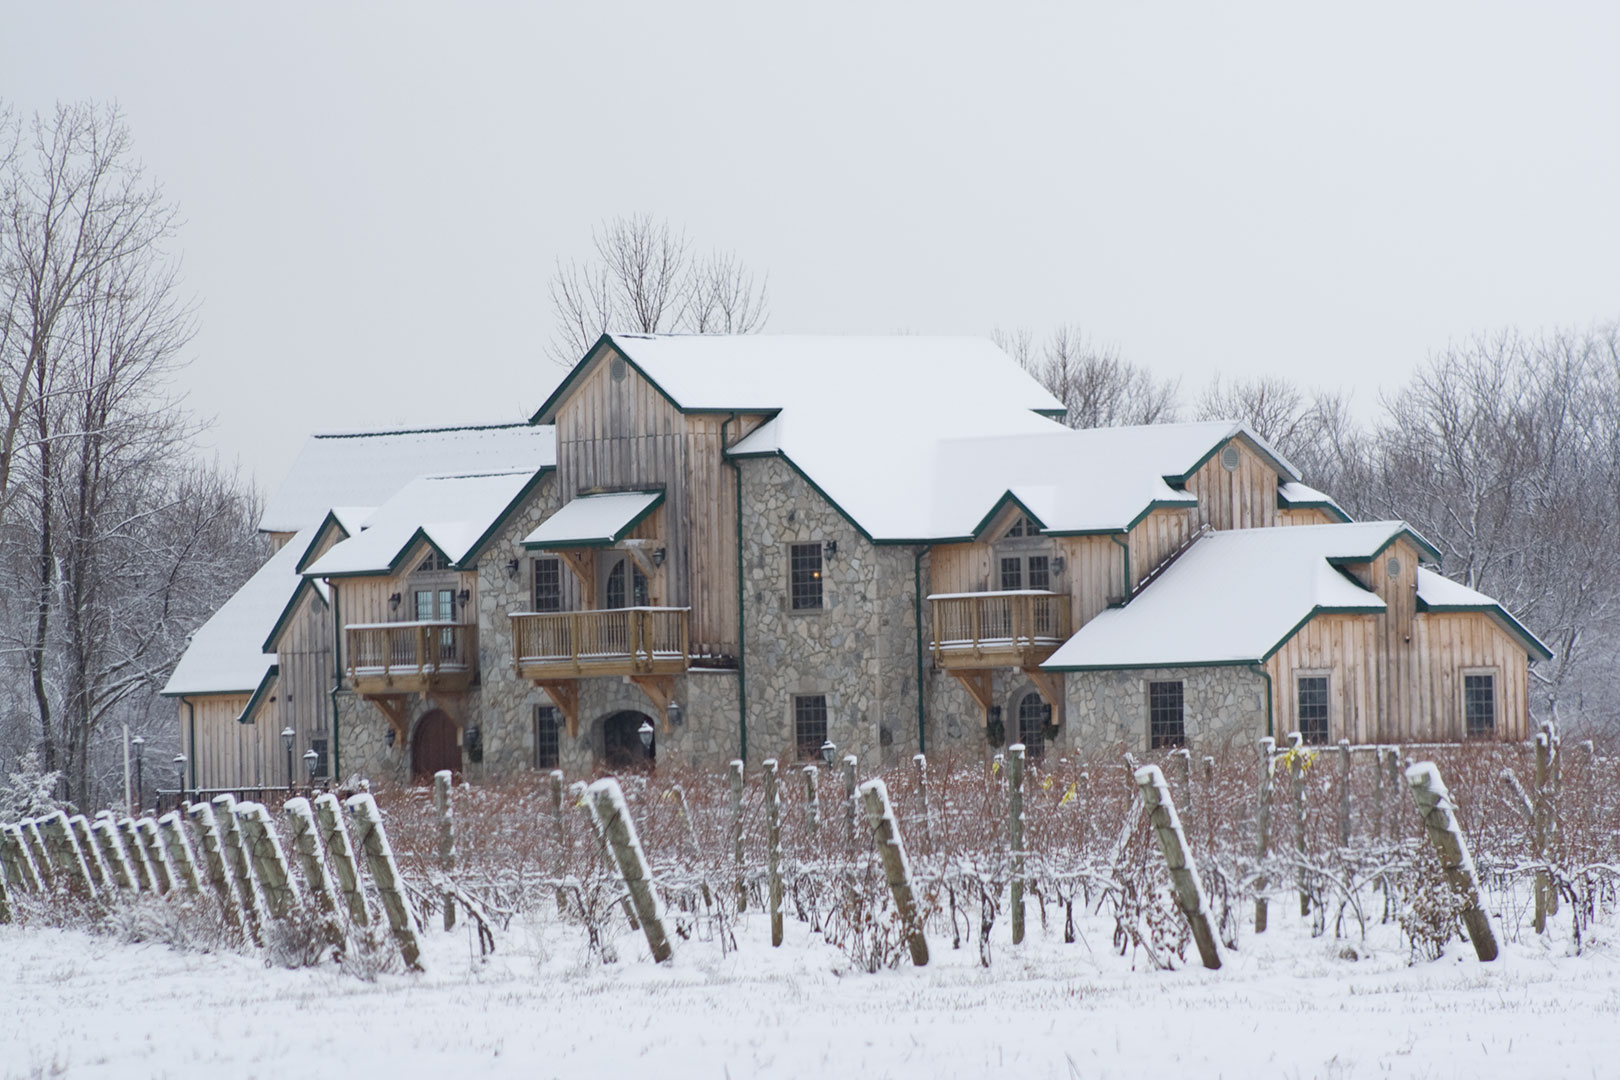 Winter---Winery-Front-1